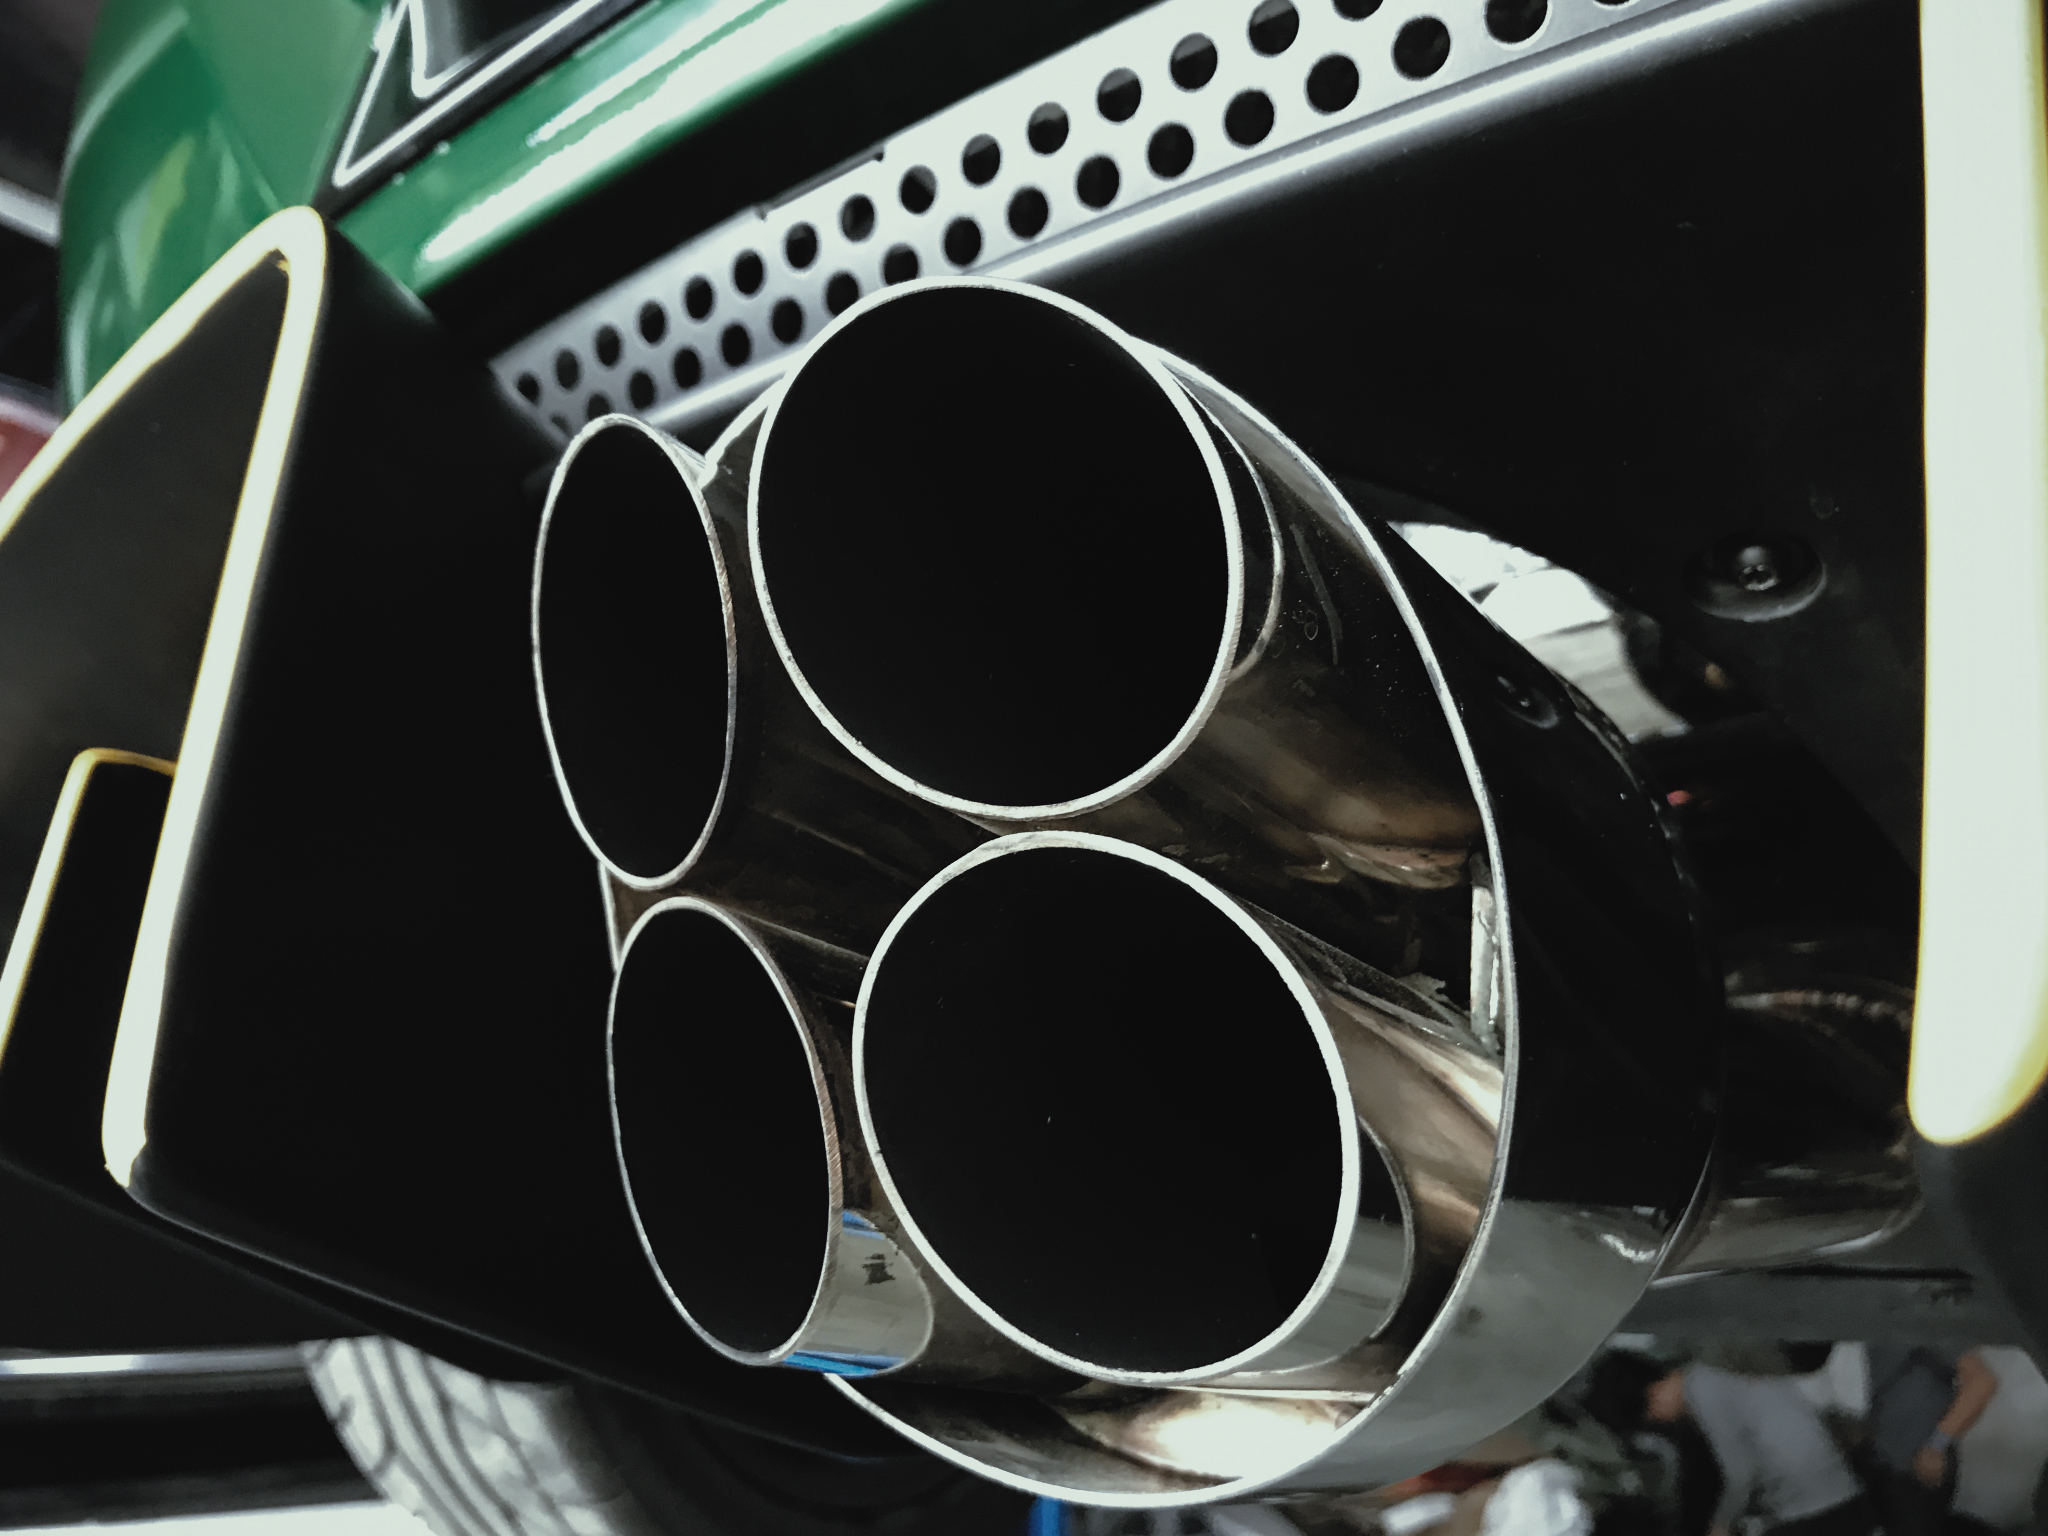 Lotus rocket inspired Exhaust System